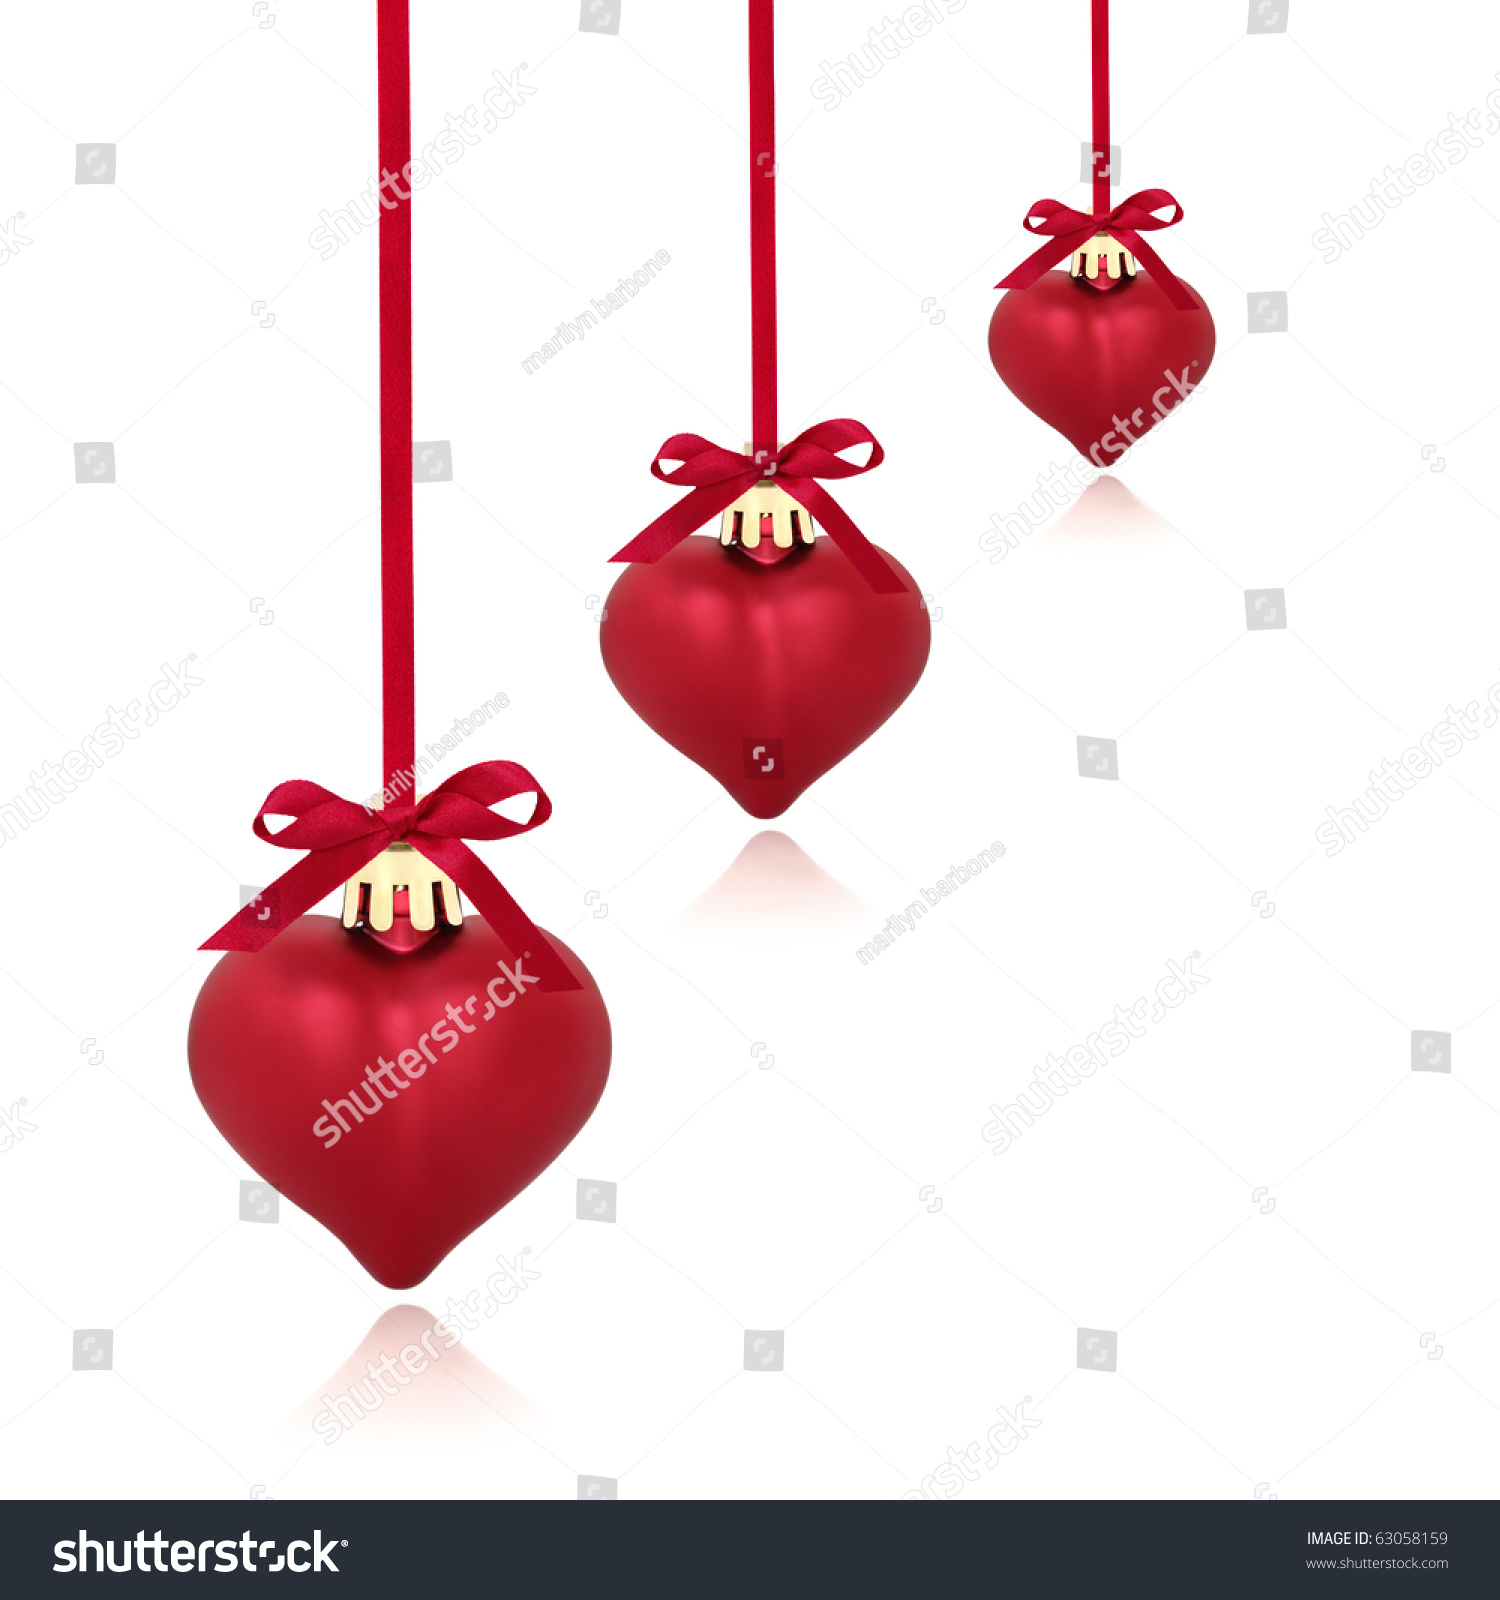 Christmas heart shaped red baubles with ribbon and bows